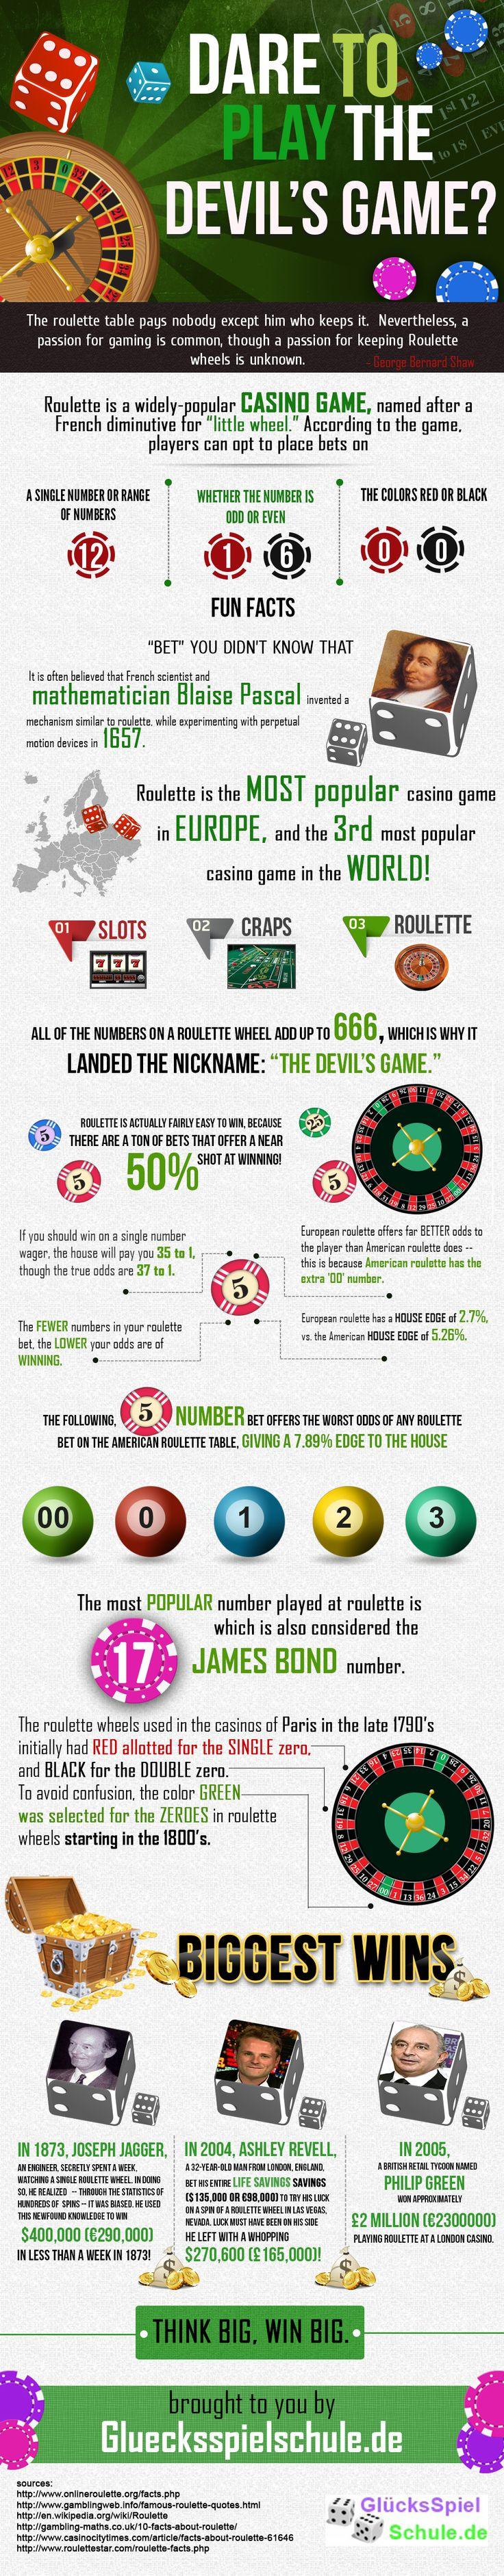 Casino royale interesting facts